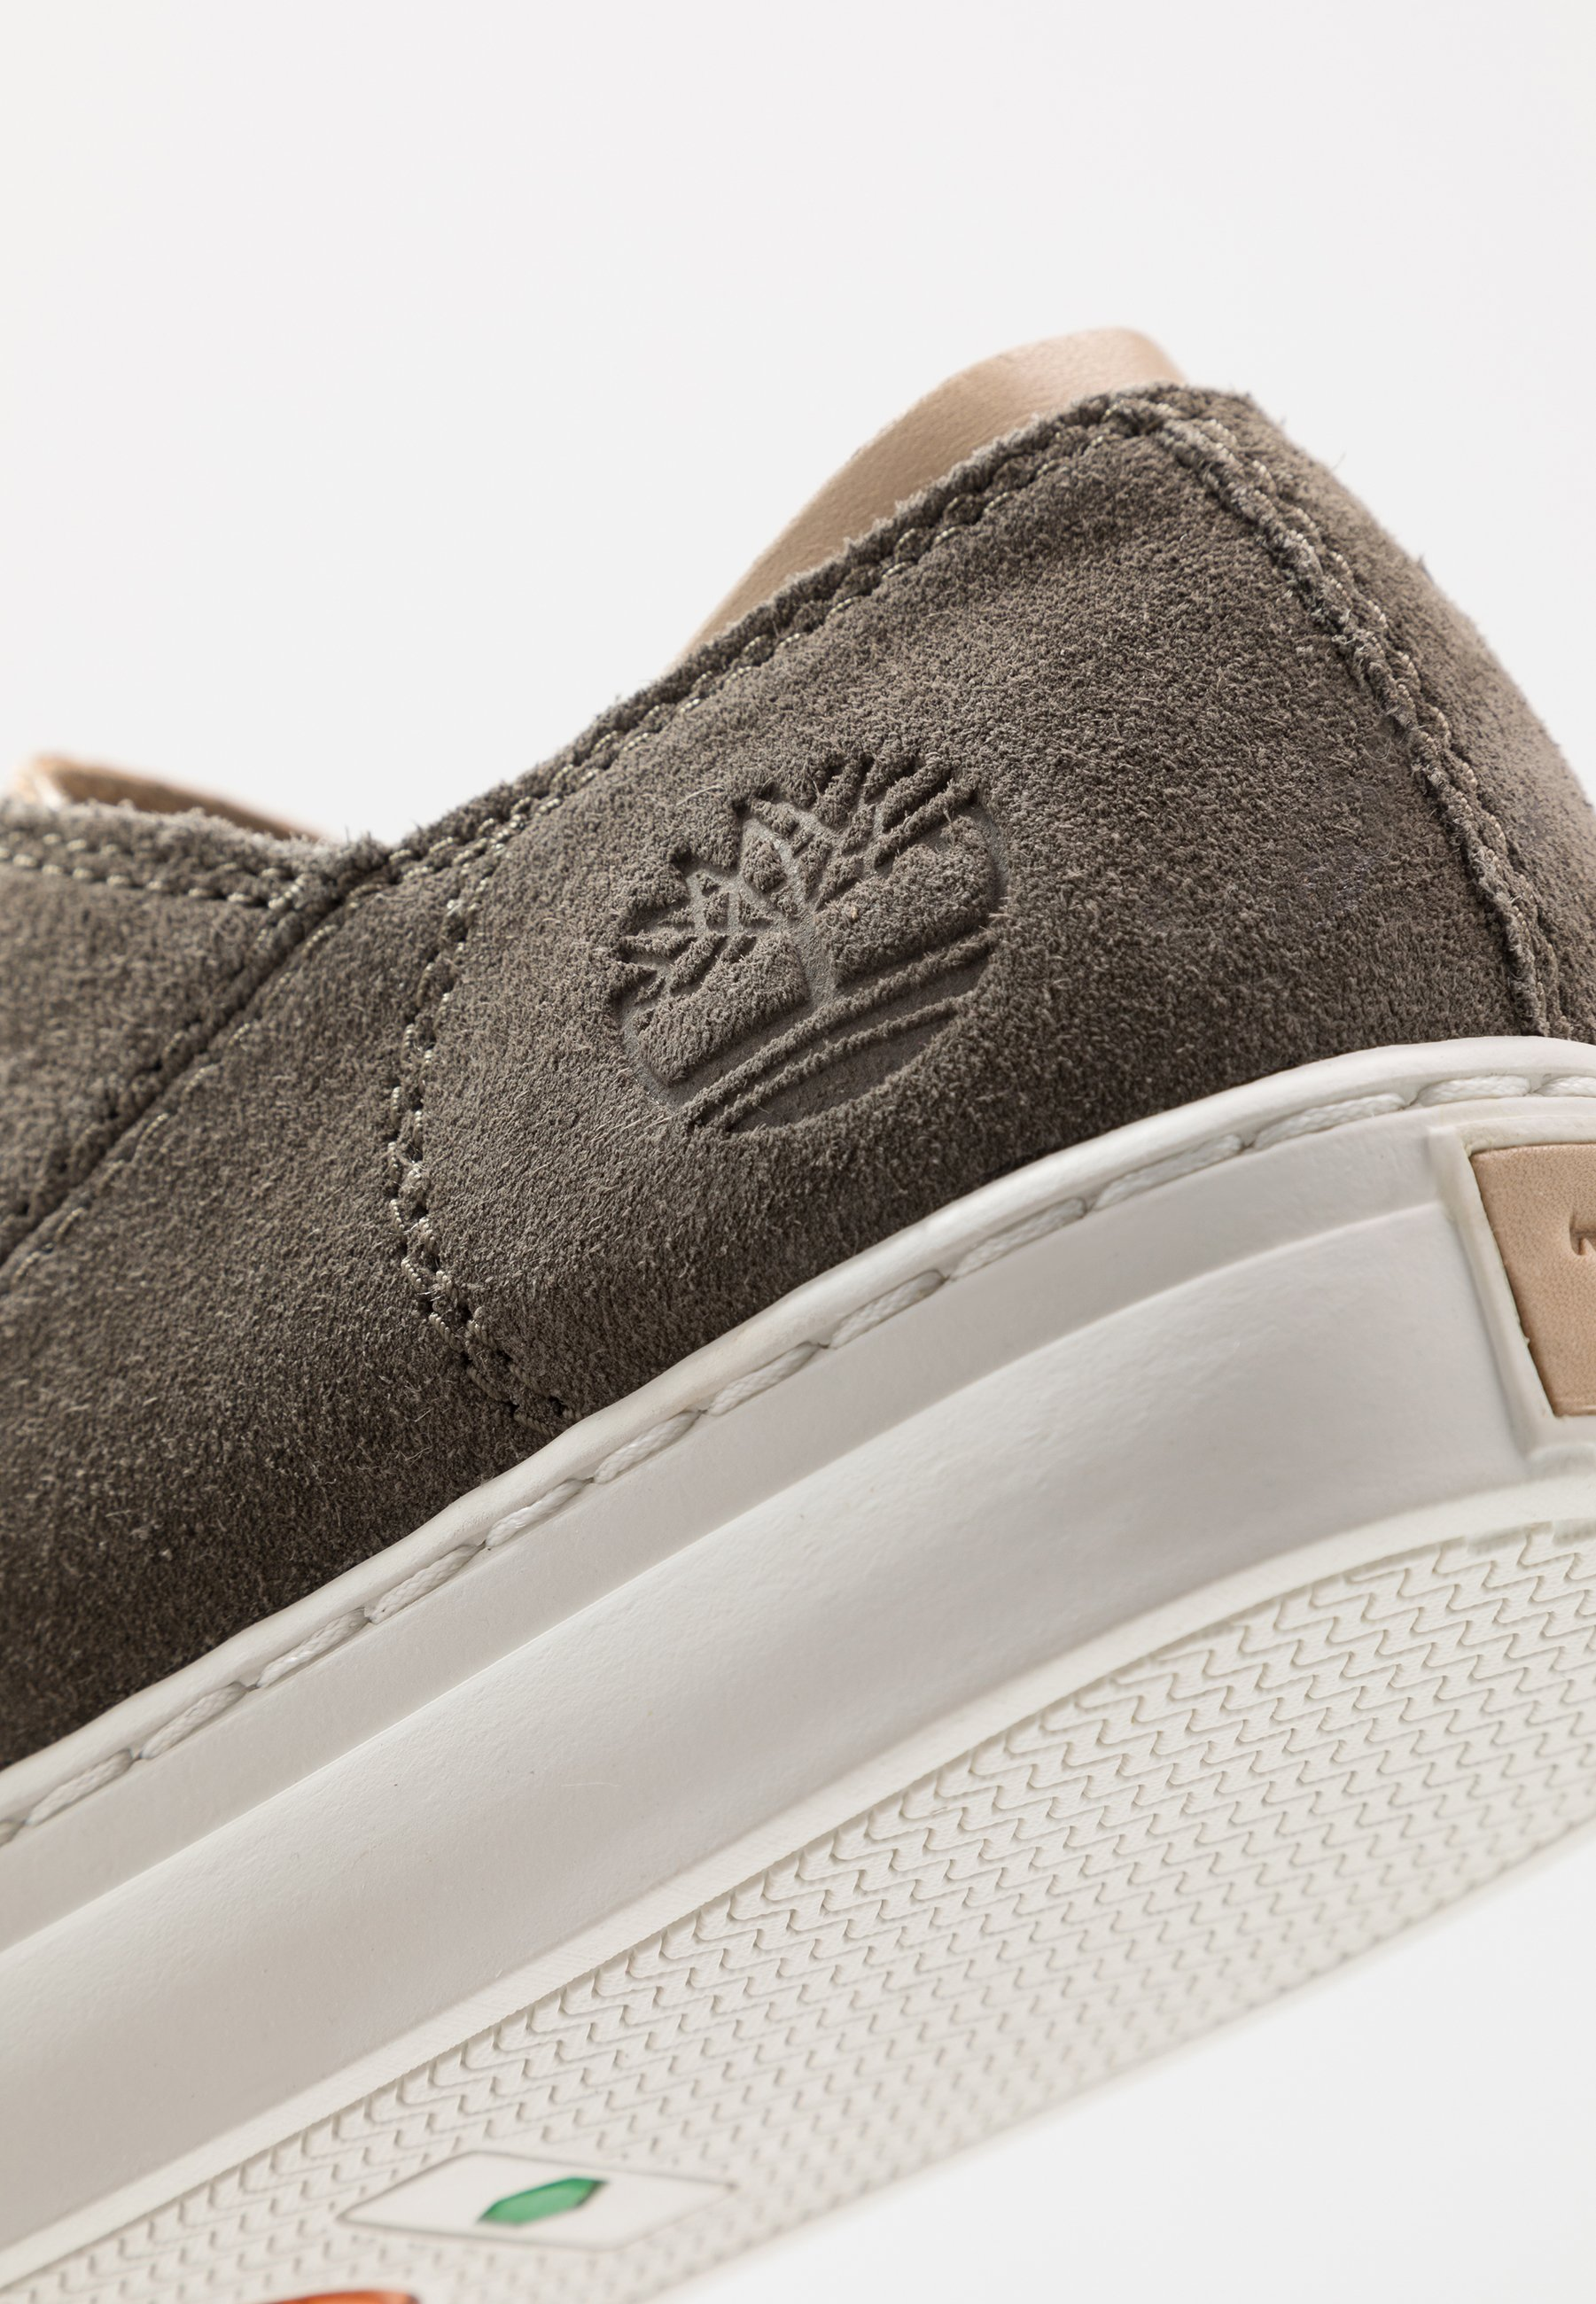 Timberland Adventure 2.0 - Sneakers Olive